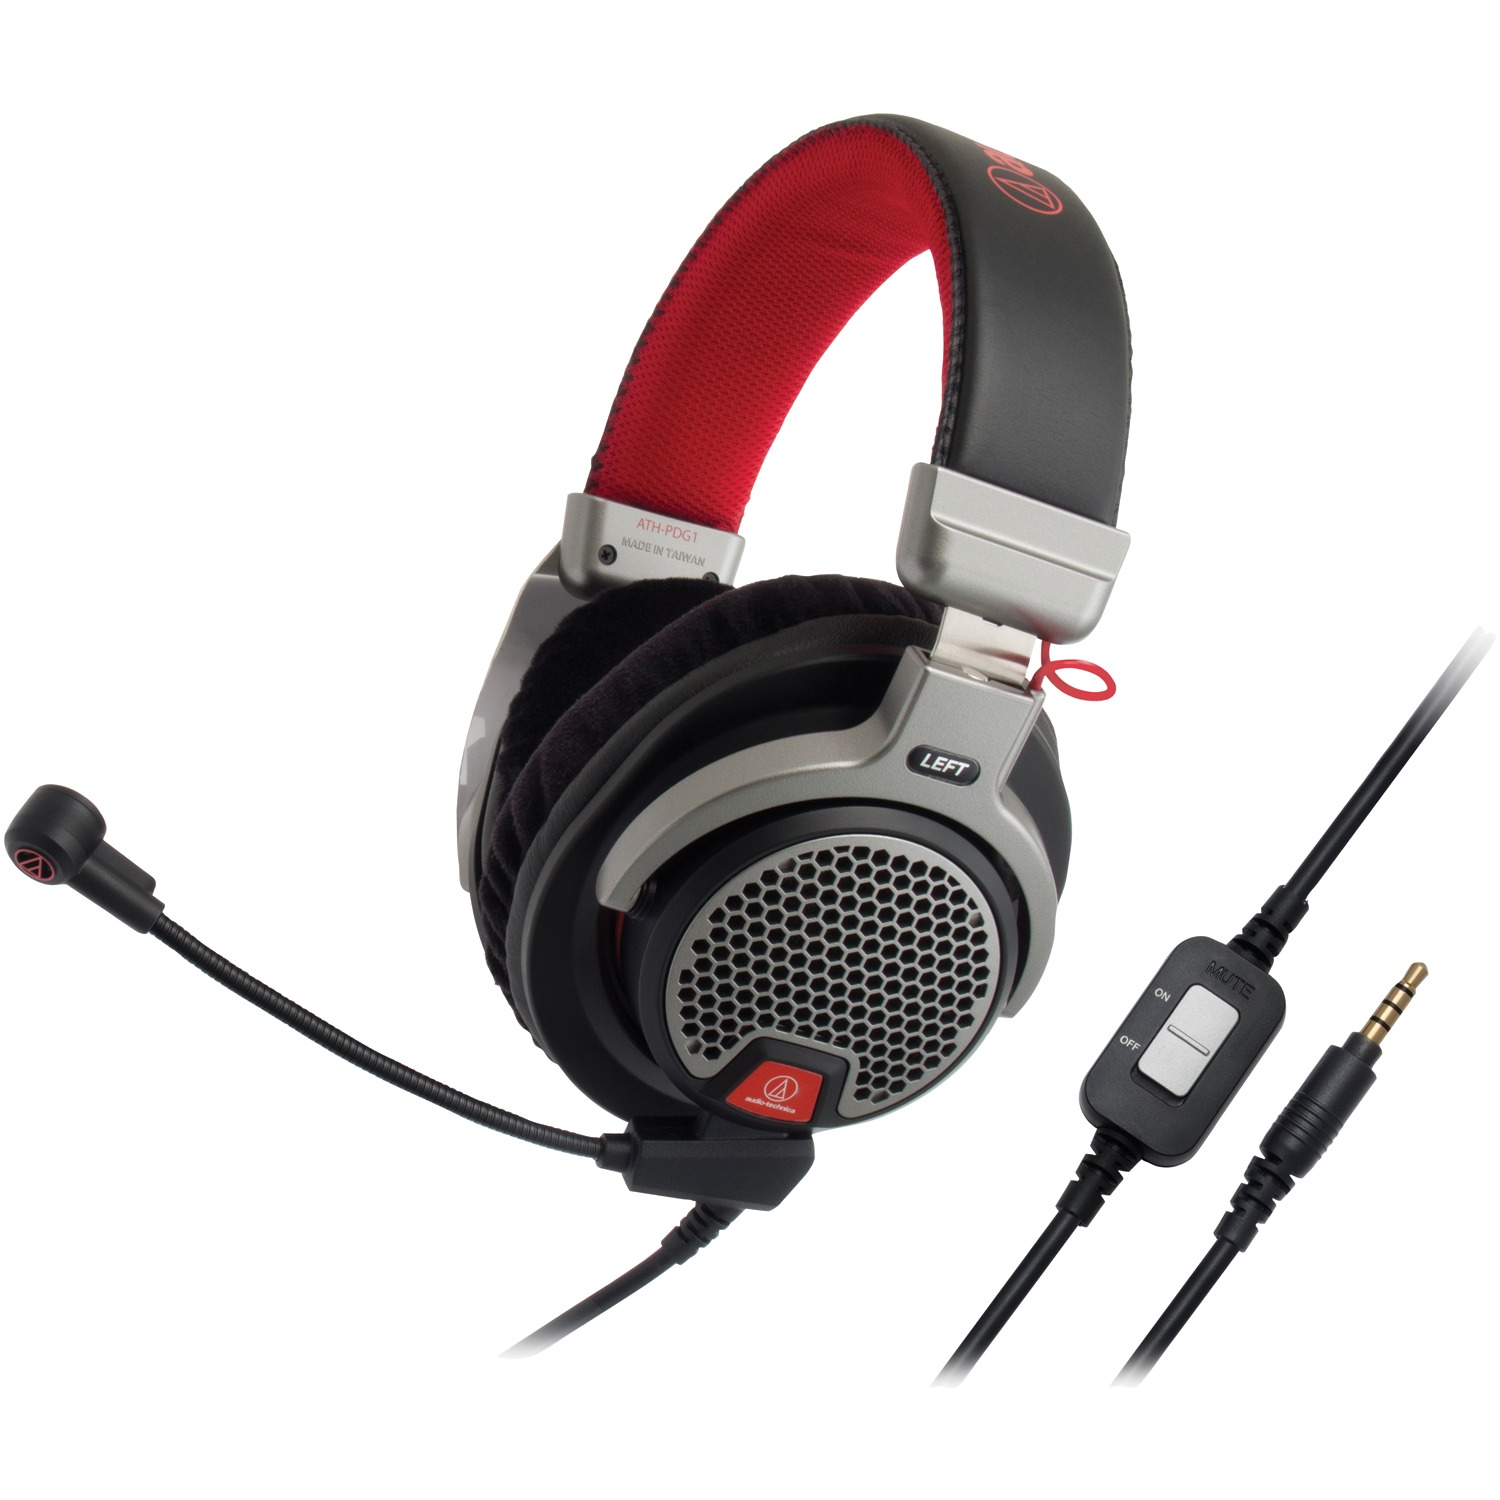 Audio-Technica ATH-PDG1 Ath-Pdg1 Premium Gaming Headset With Open-Air Dynamic Drivers